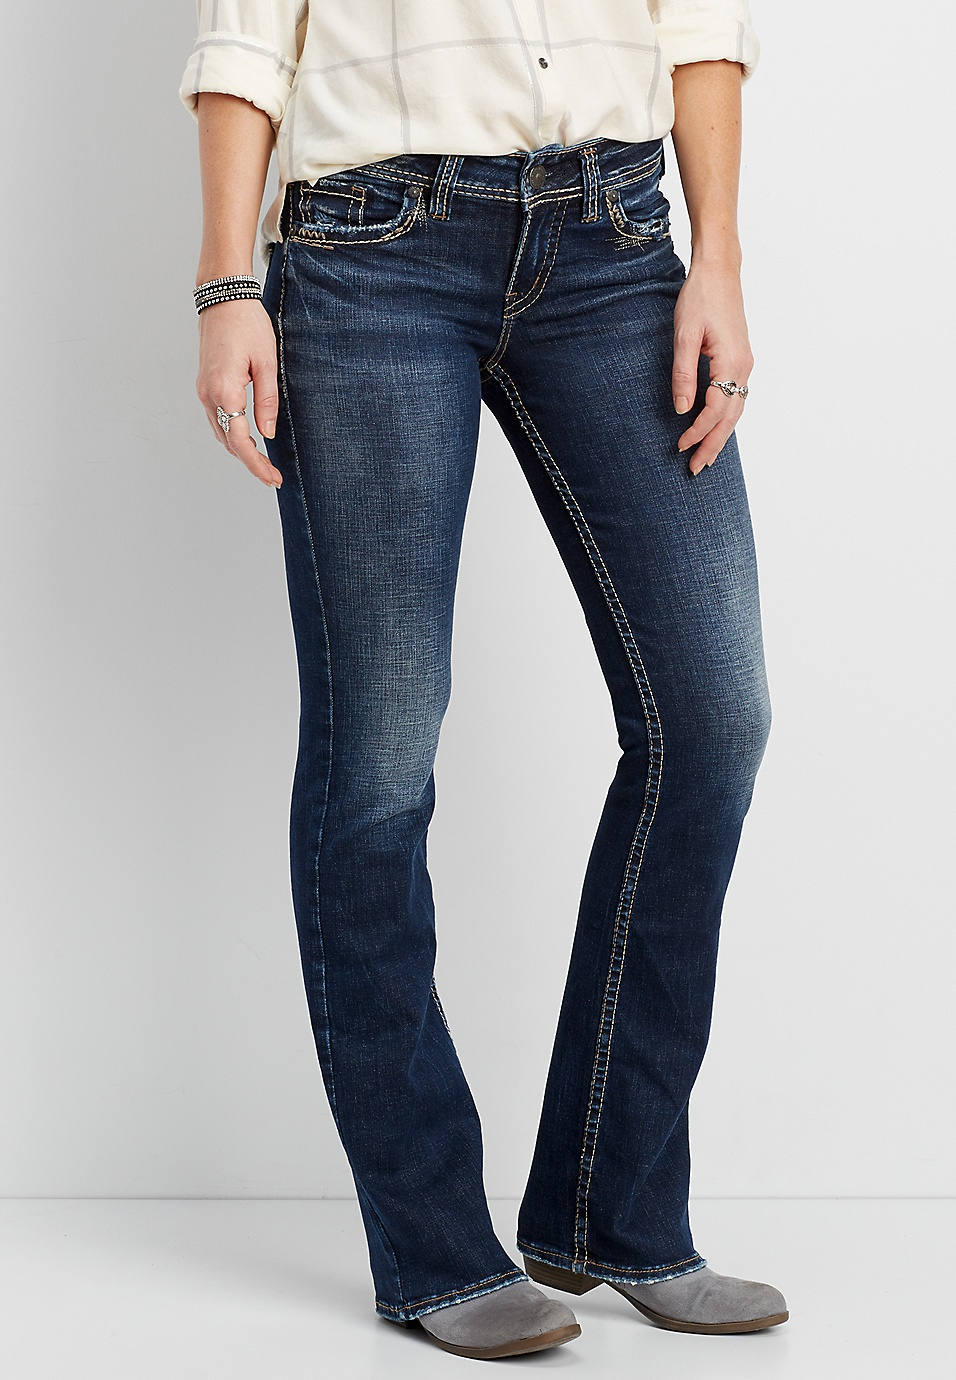 11c3913f Silver Jeans Co.® Suki slim boot jeans with destructed back flap pockets |  maurices